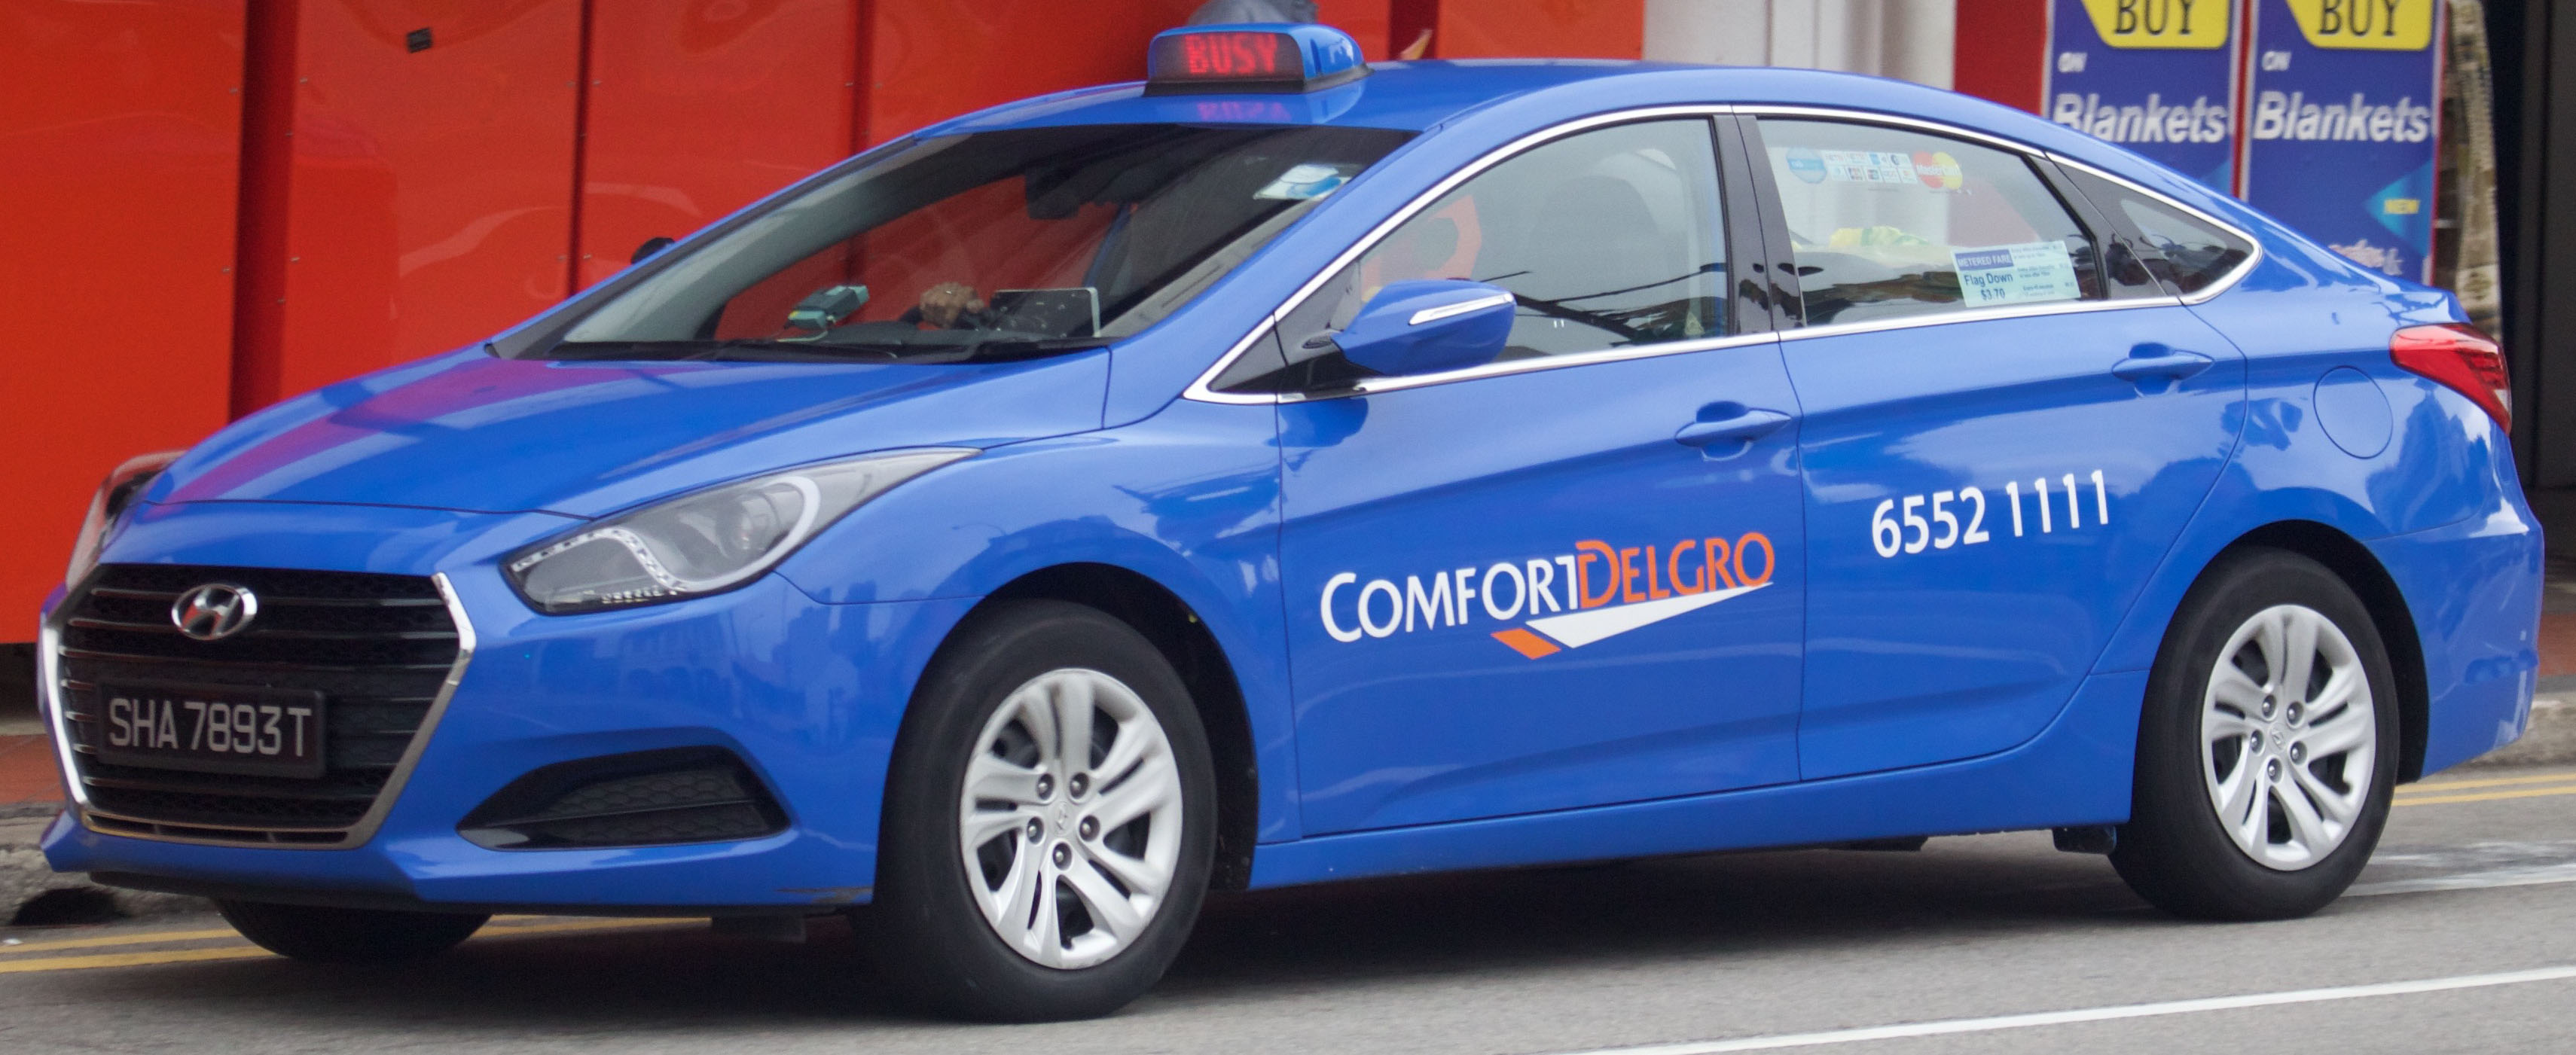 ComfortDelGro Taxi's promo codes are quite popular among people in Singapore. Photo courtesy: Wikimedia